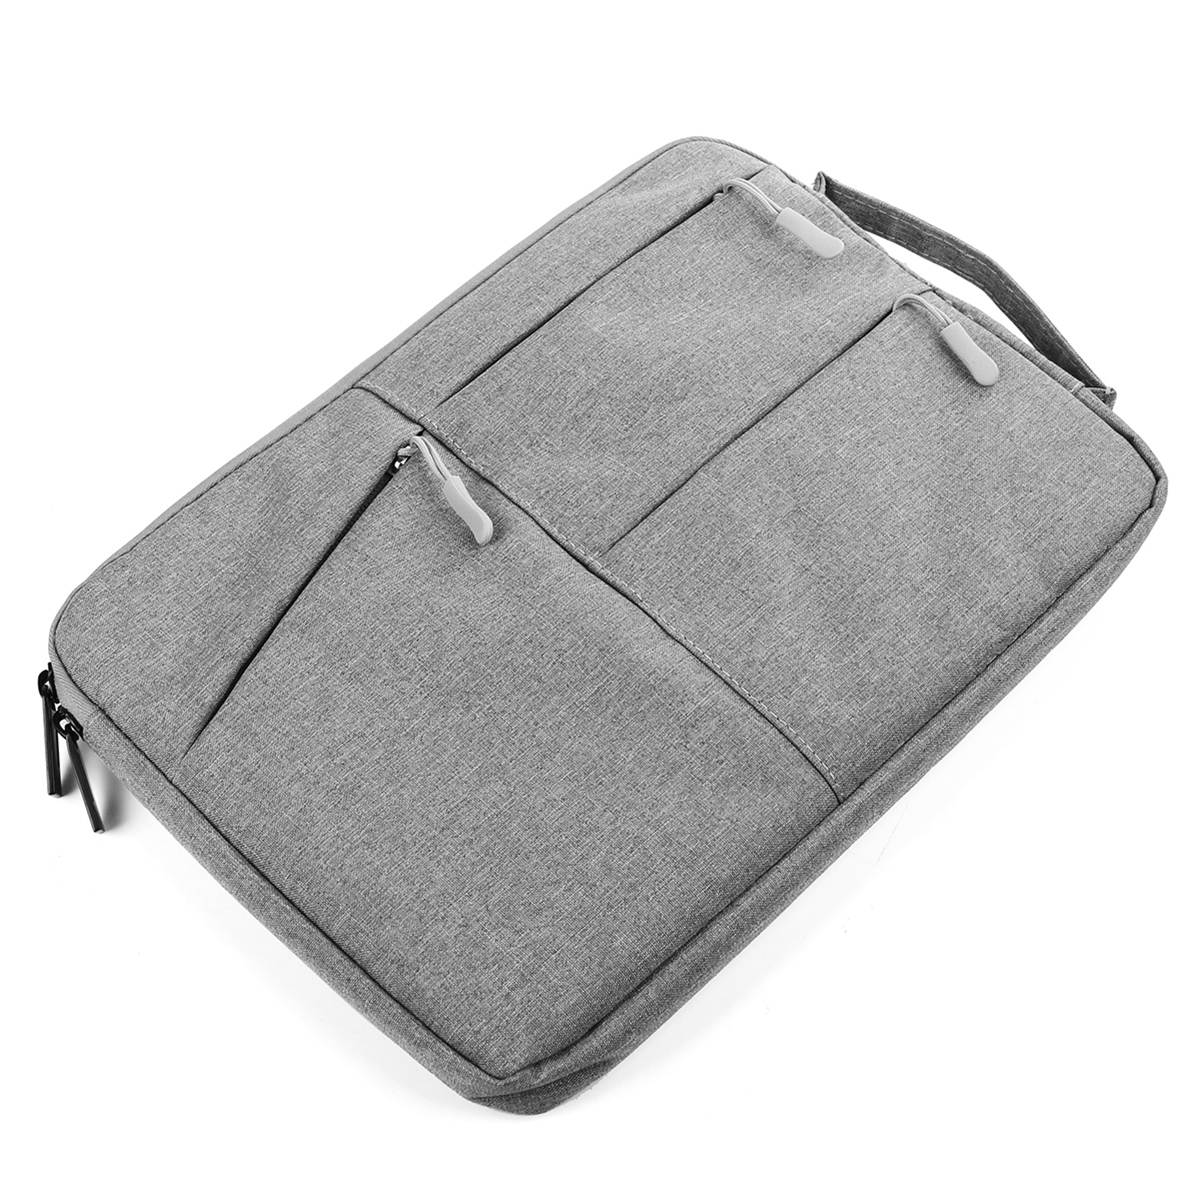 13inch Fashion Waterproof Laptop Bag Case for MacBook Pro Bag for Xiaomi Notebook Air 13 Shockproof Nylon Laptop Sleeve 2018